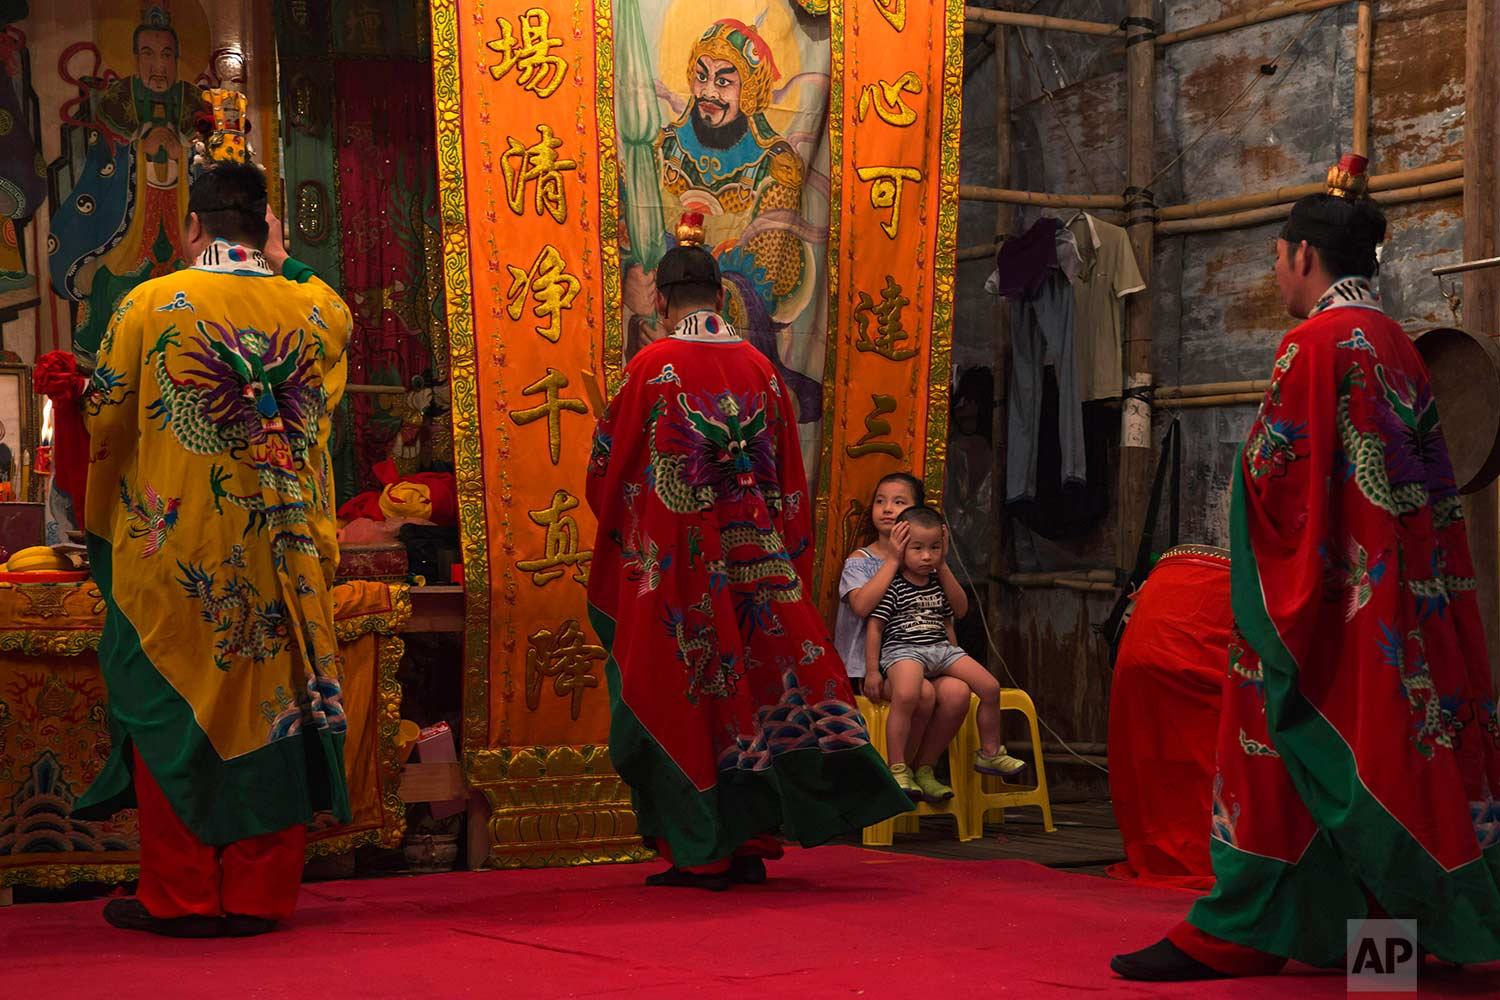 """In this Sept. 2, 2017, photo, Taoists attend a service at a makeshift theater during the """"Hungry Ghost Festival"""" in Hong Kong. (AP Photo/Kin Cheung)"""